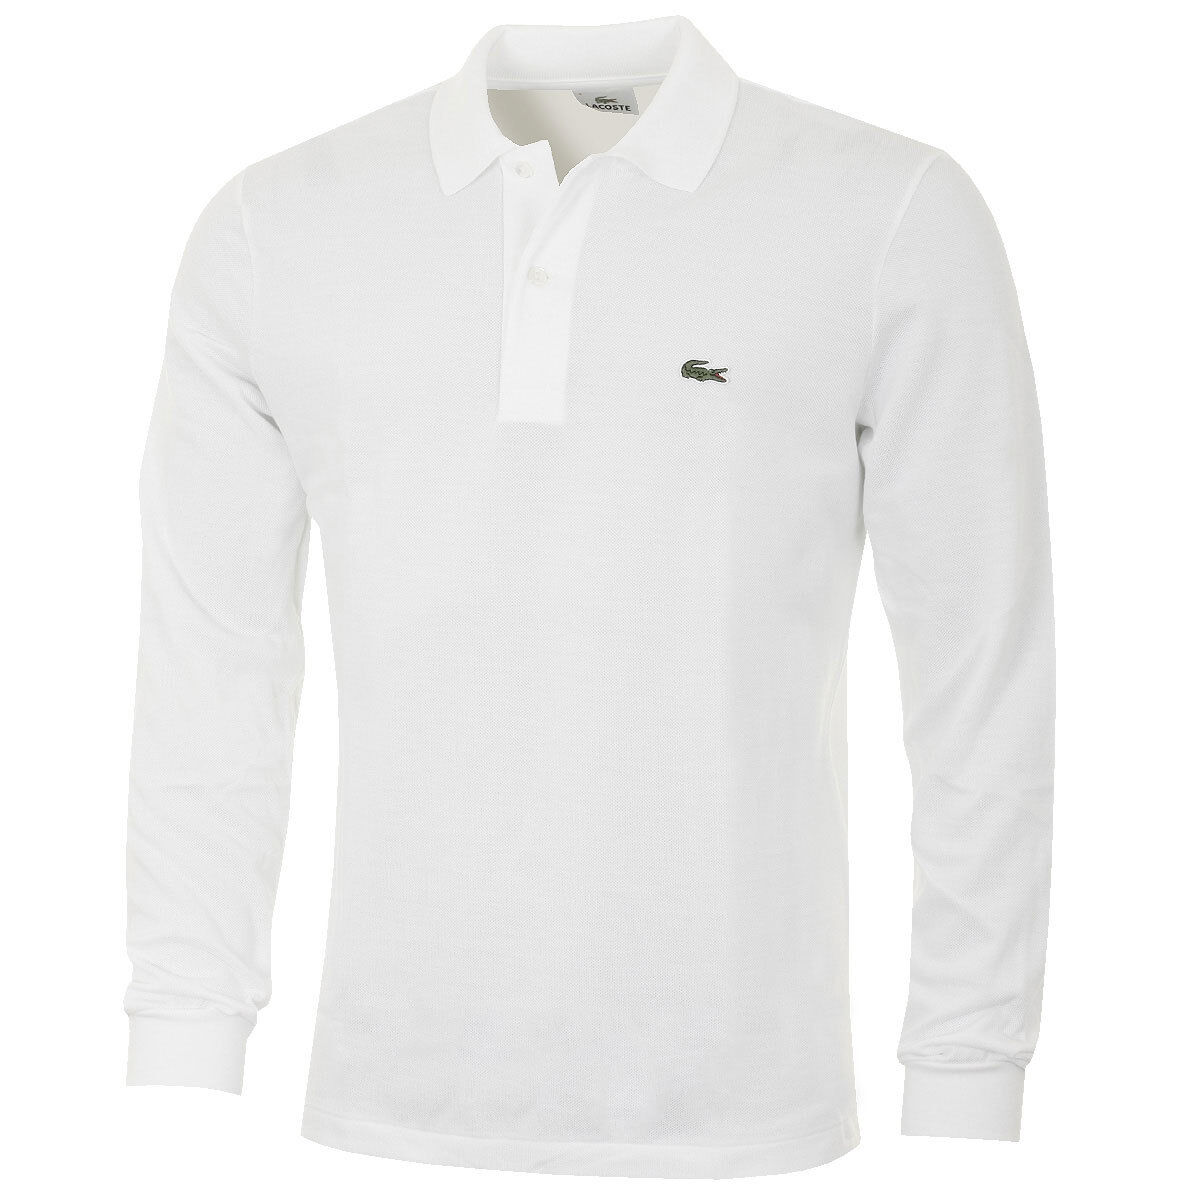 Lacoste L1312 Mens Classic Cotton Long Sleeve Polo Shirt - Size Large T5 - White